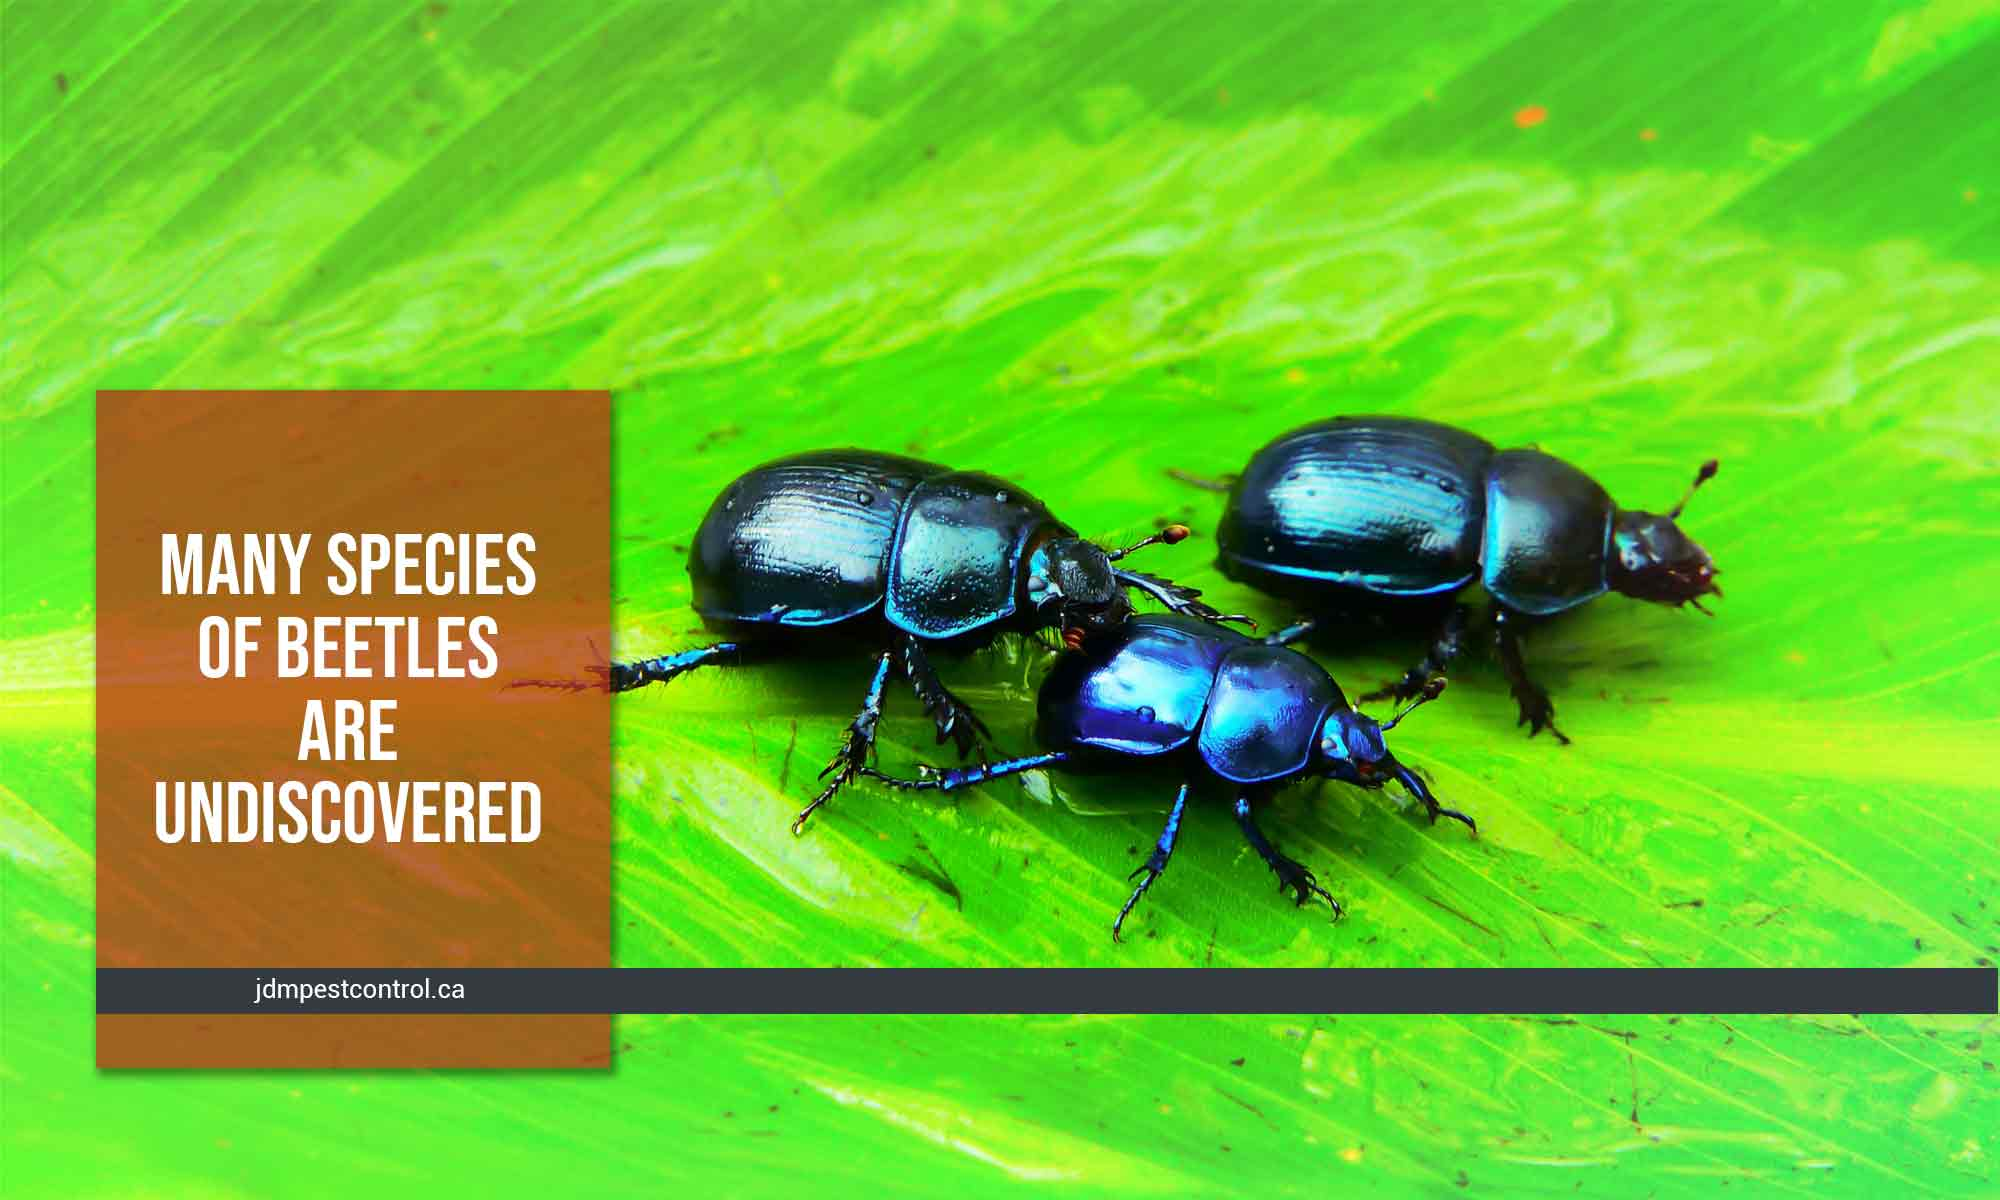 undiscovered species of beetles